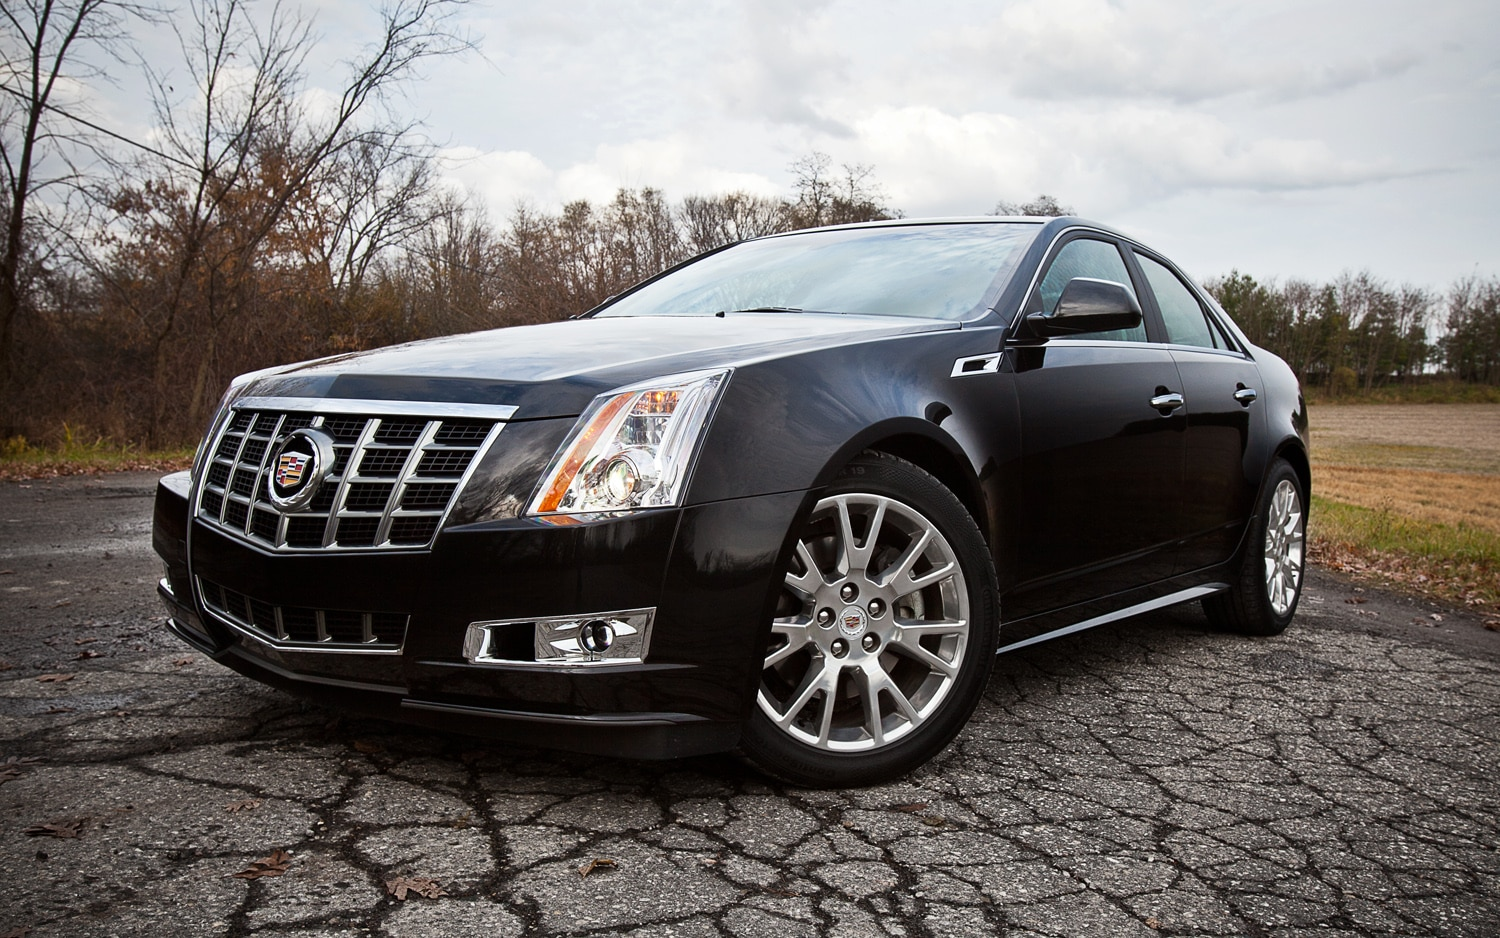 Cadillac Cts Premium Collection Front Left View on Cadillac Cts V Rear Differential